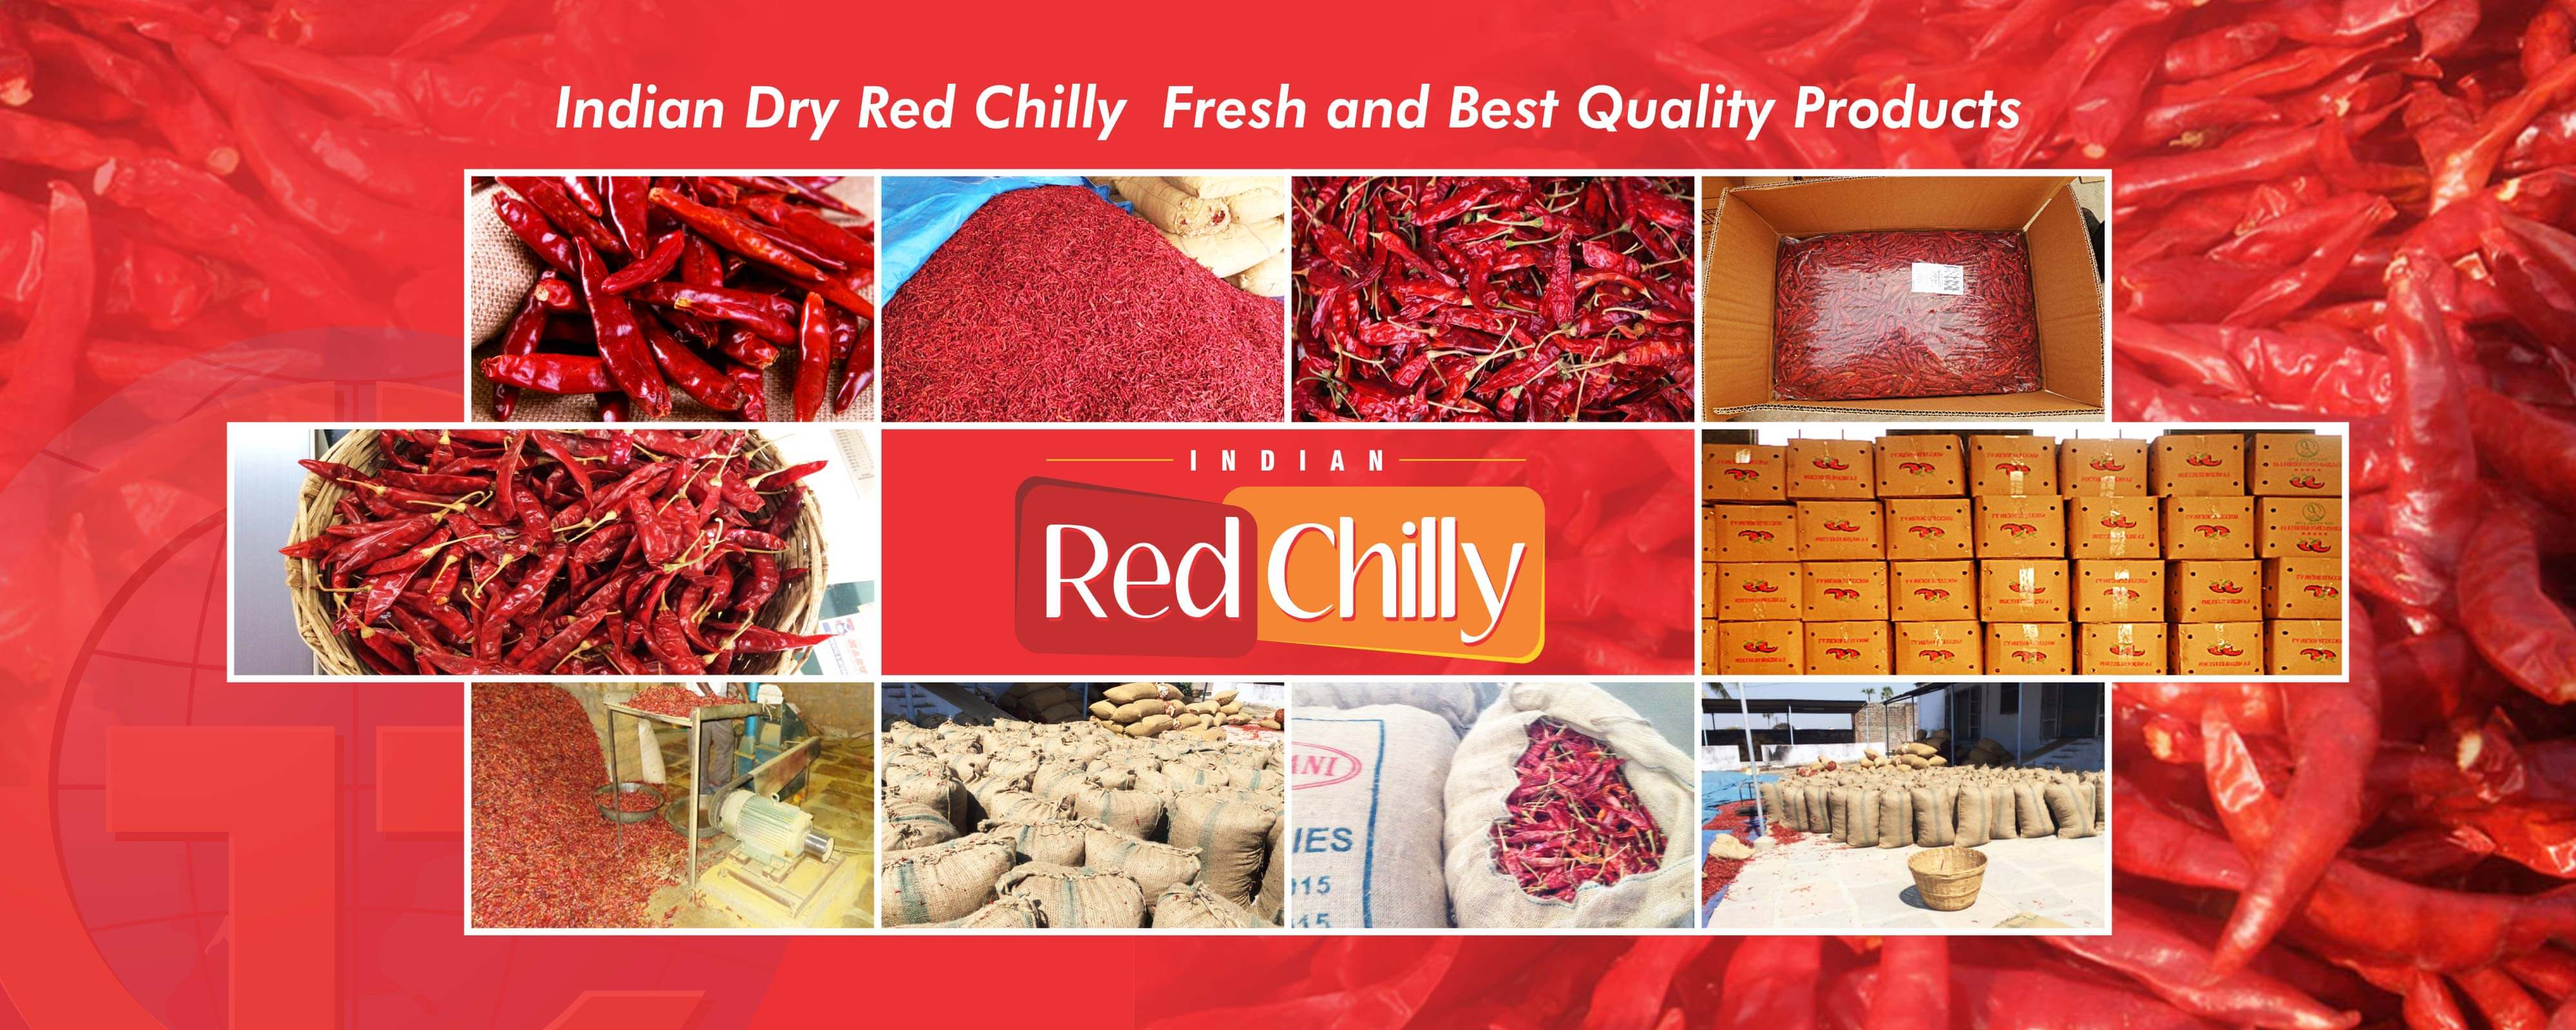 dry-red-chilly-banner